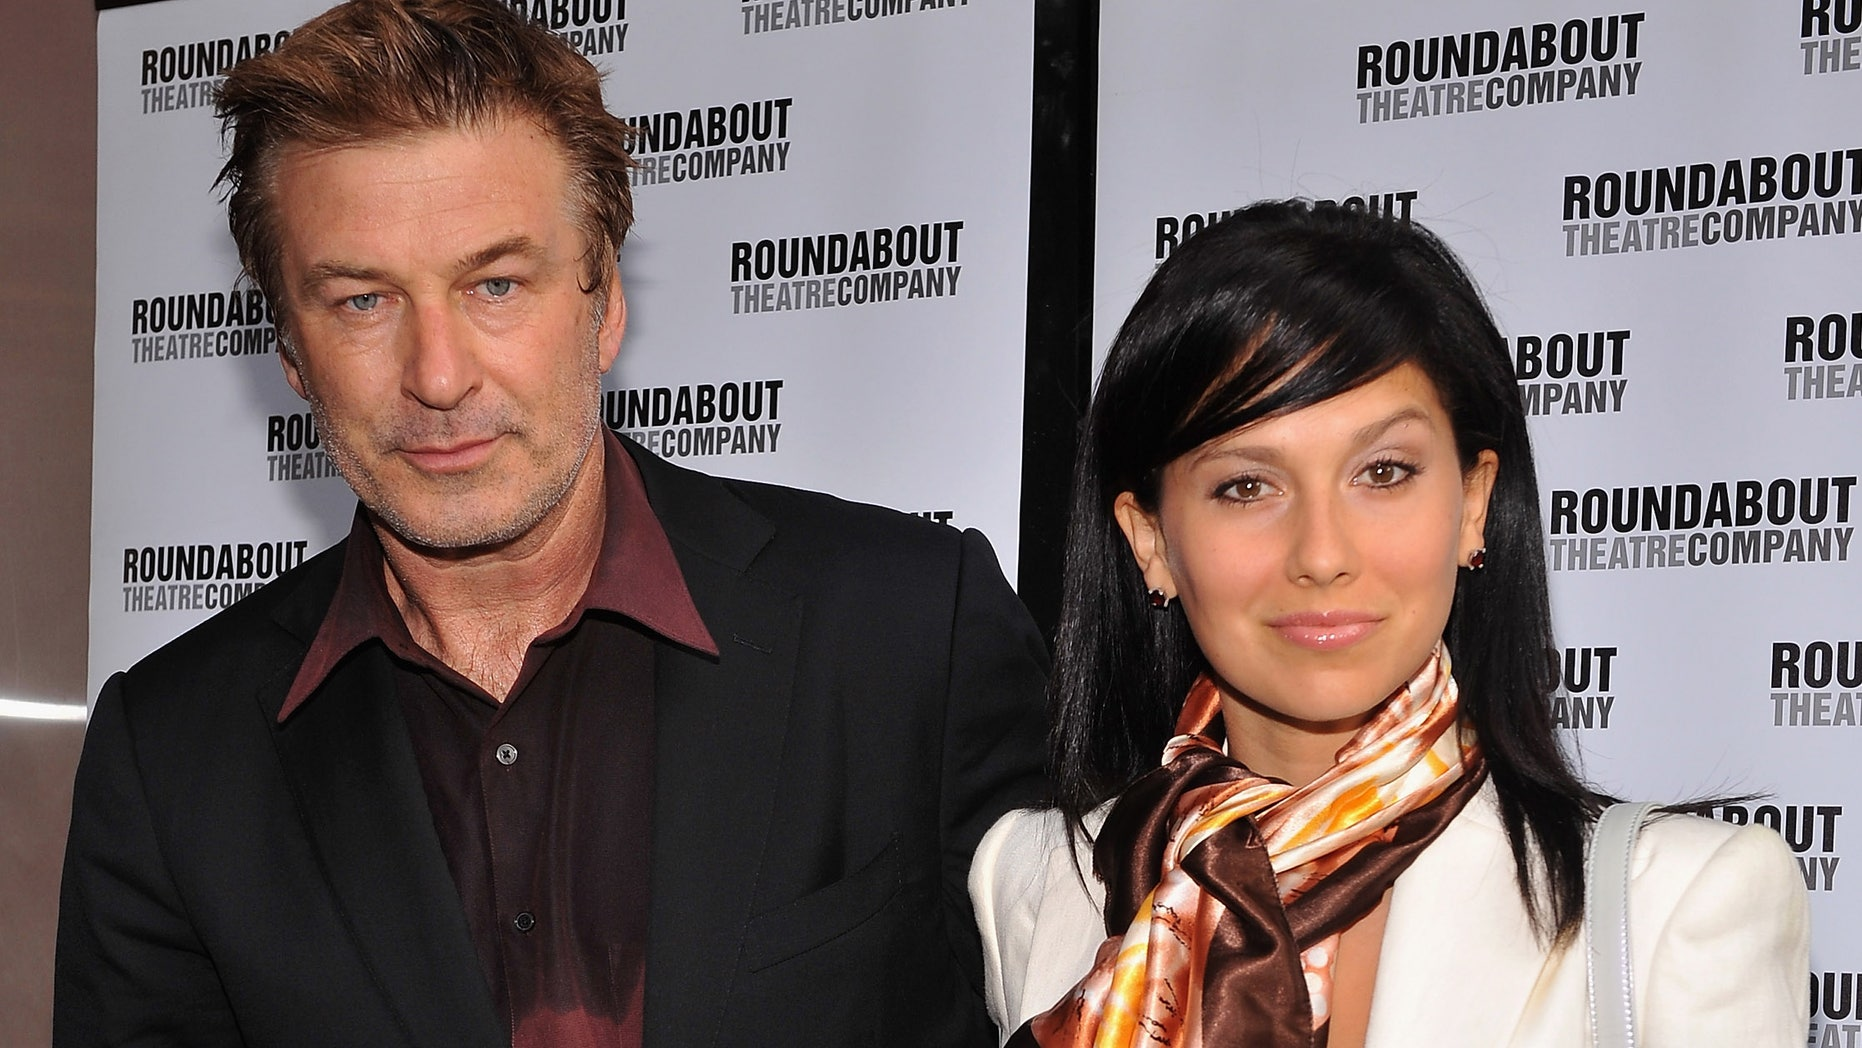 """NEW YORK, NY - JUNE 14:  Actor Alec Baldwin and Hilaria Thomas (R) attend """"Harvey"""" Broadway Opening Night Performance  at Roundabout Theatre Company's Studio 54 on June 14, 2012 in New York City.  (Photo by Fernando Leon/Getty Images)"""